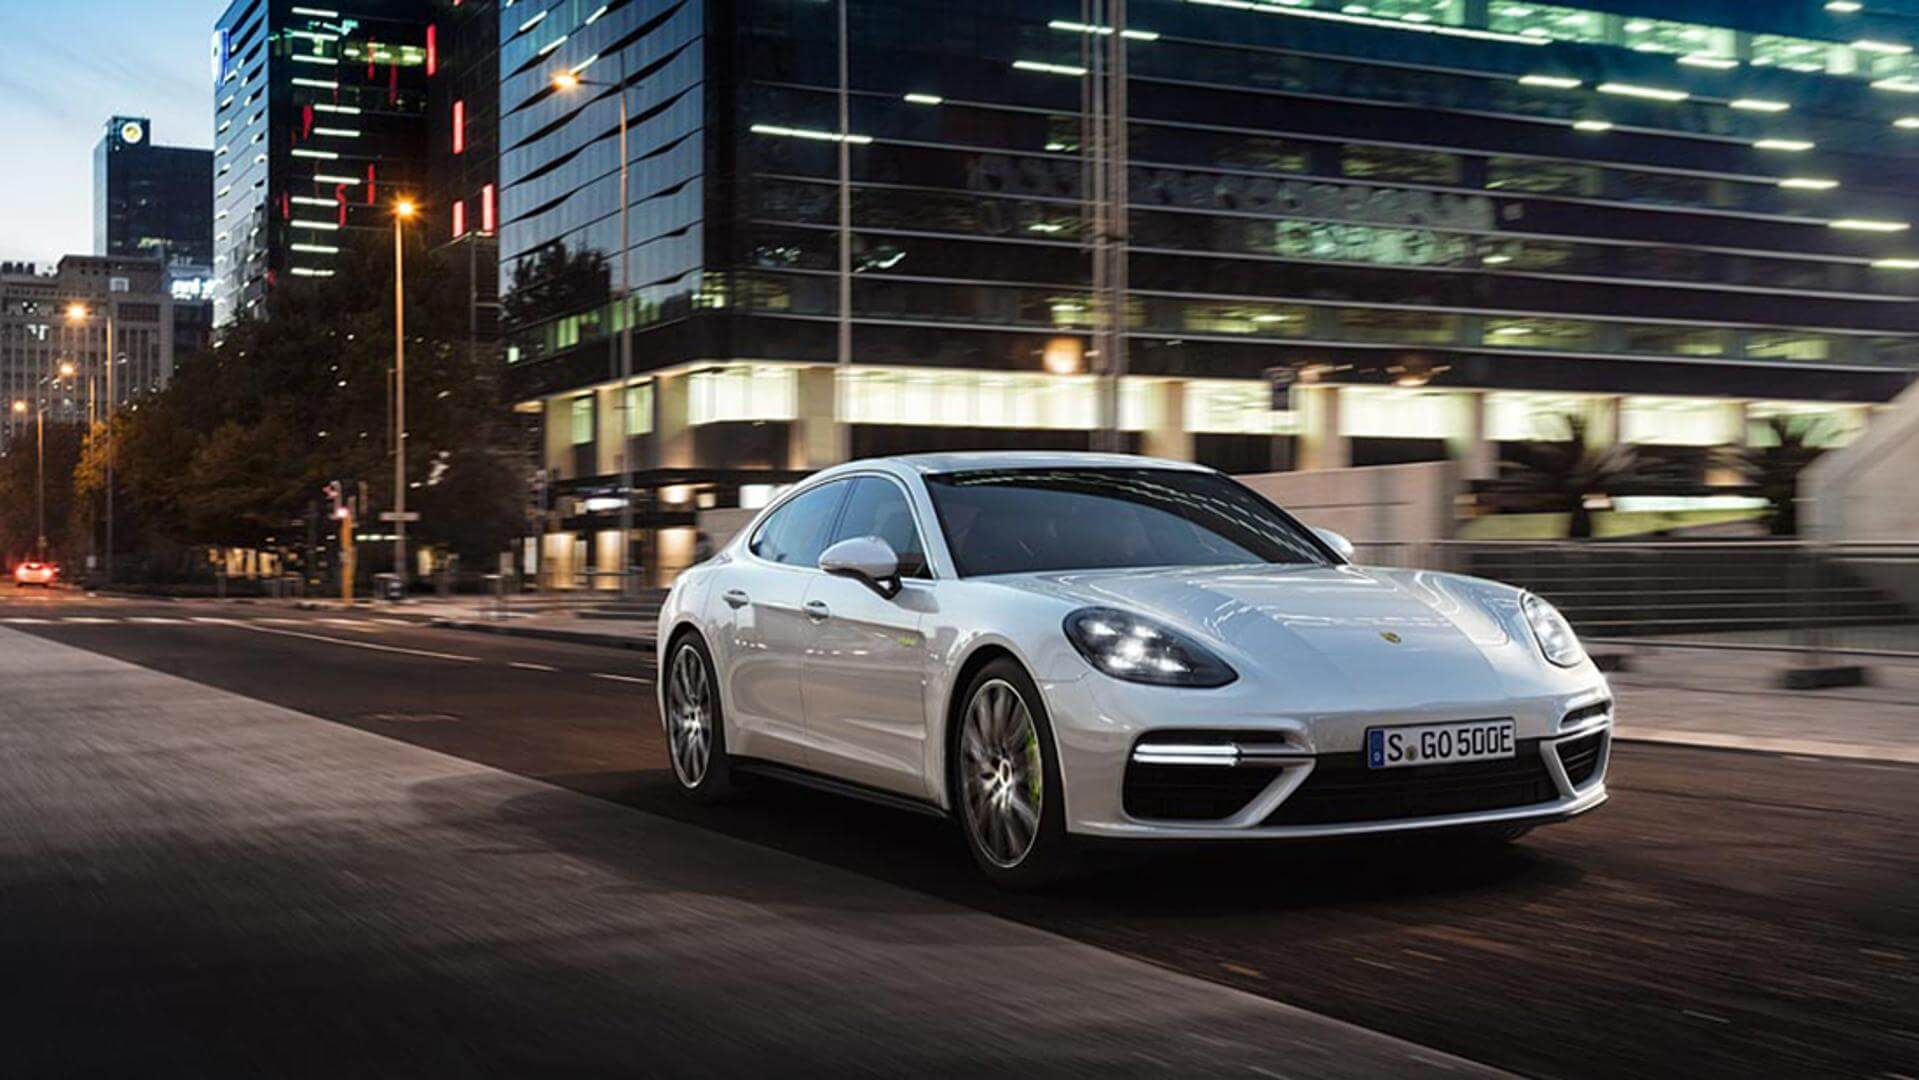 https://epunjaci.hr/wp-content/uploads/2018/10/panamera.jpg